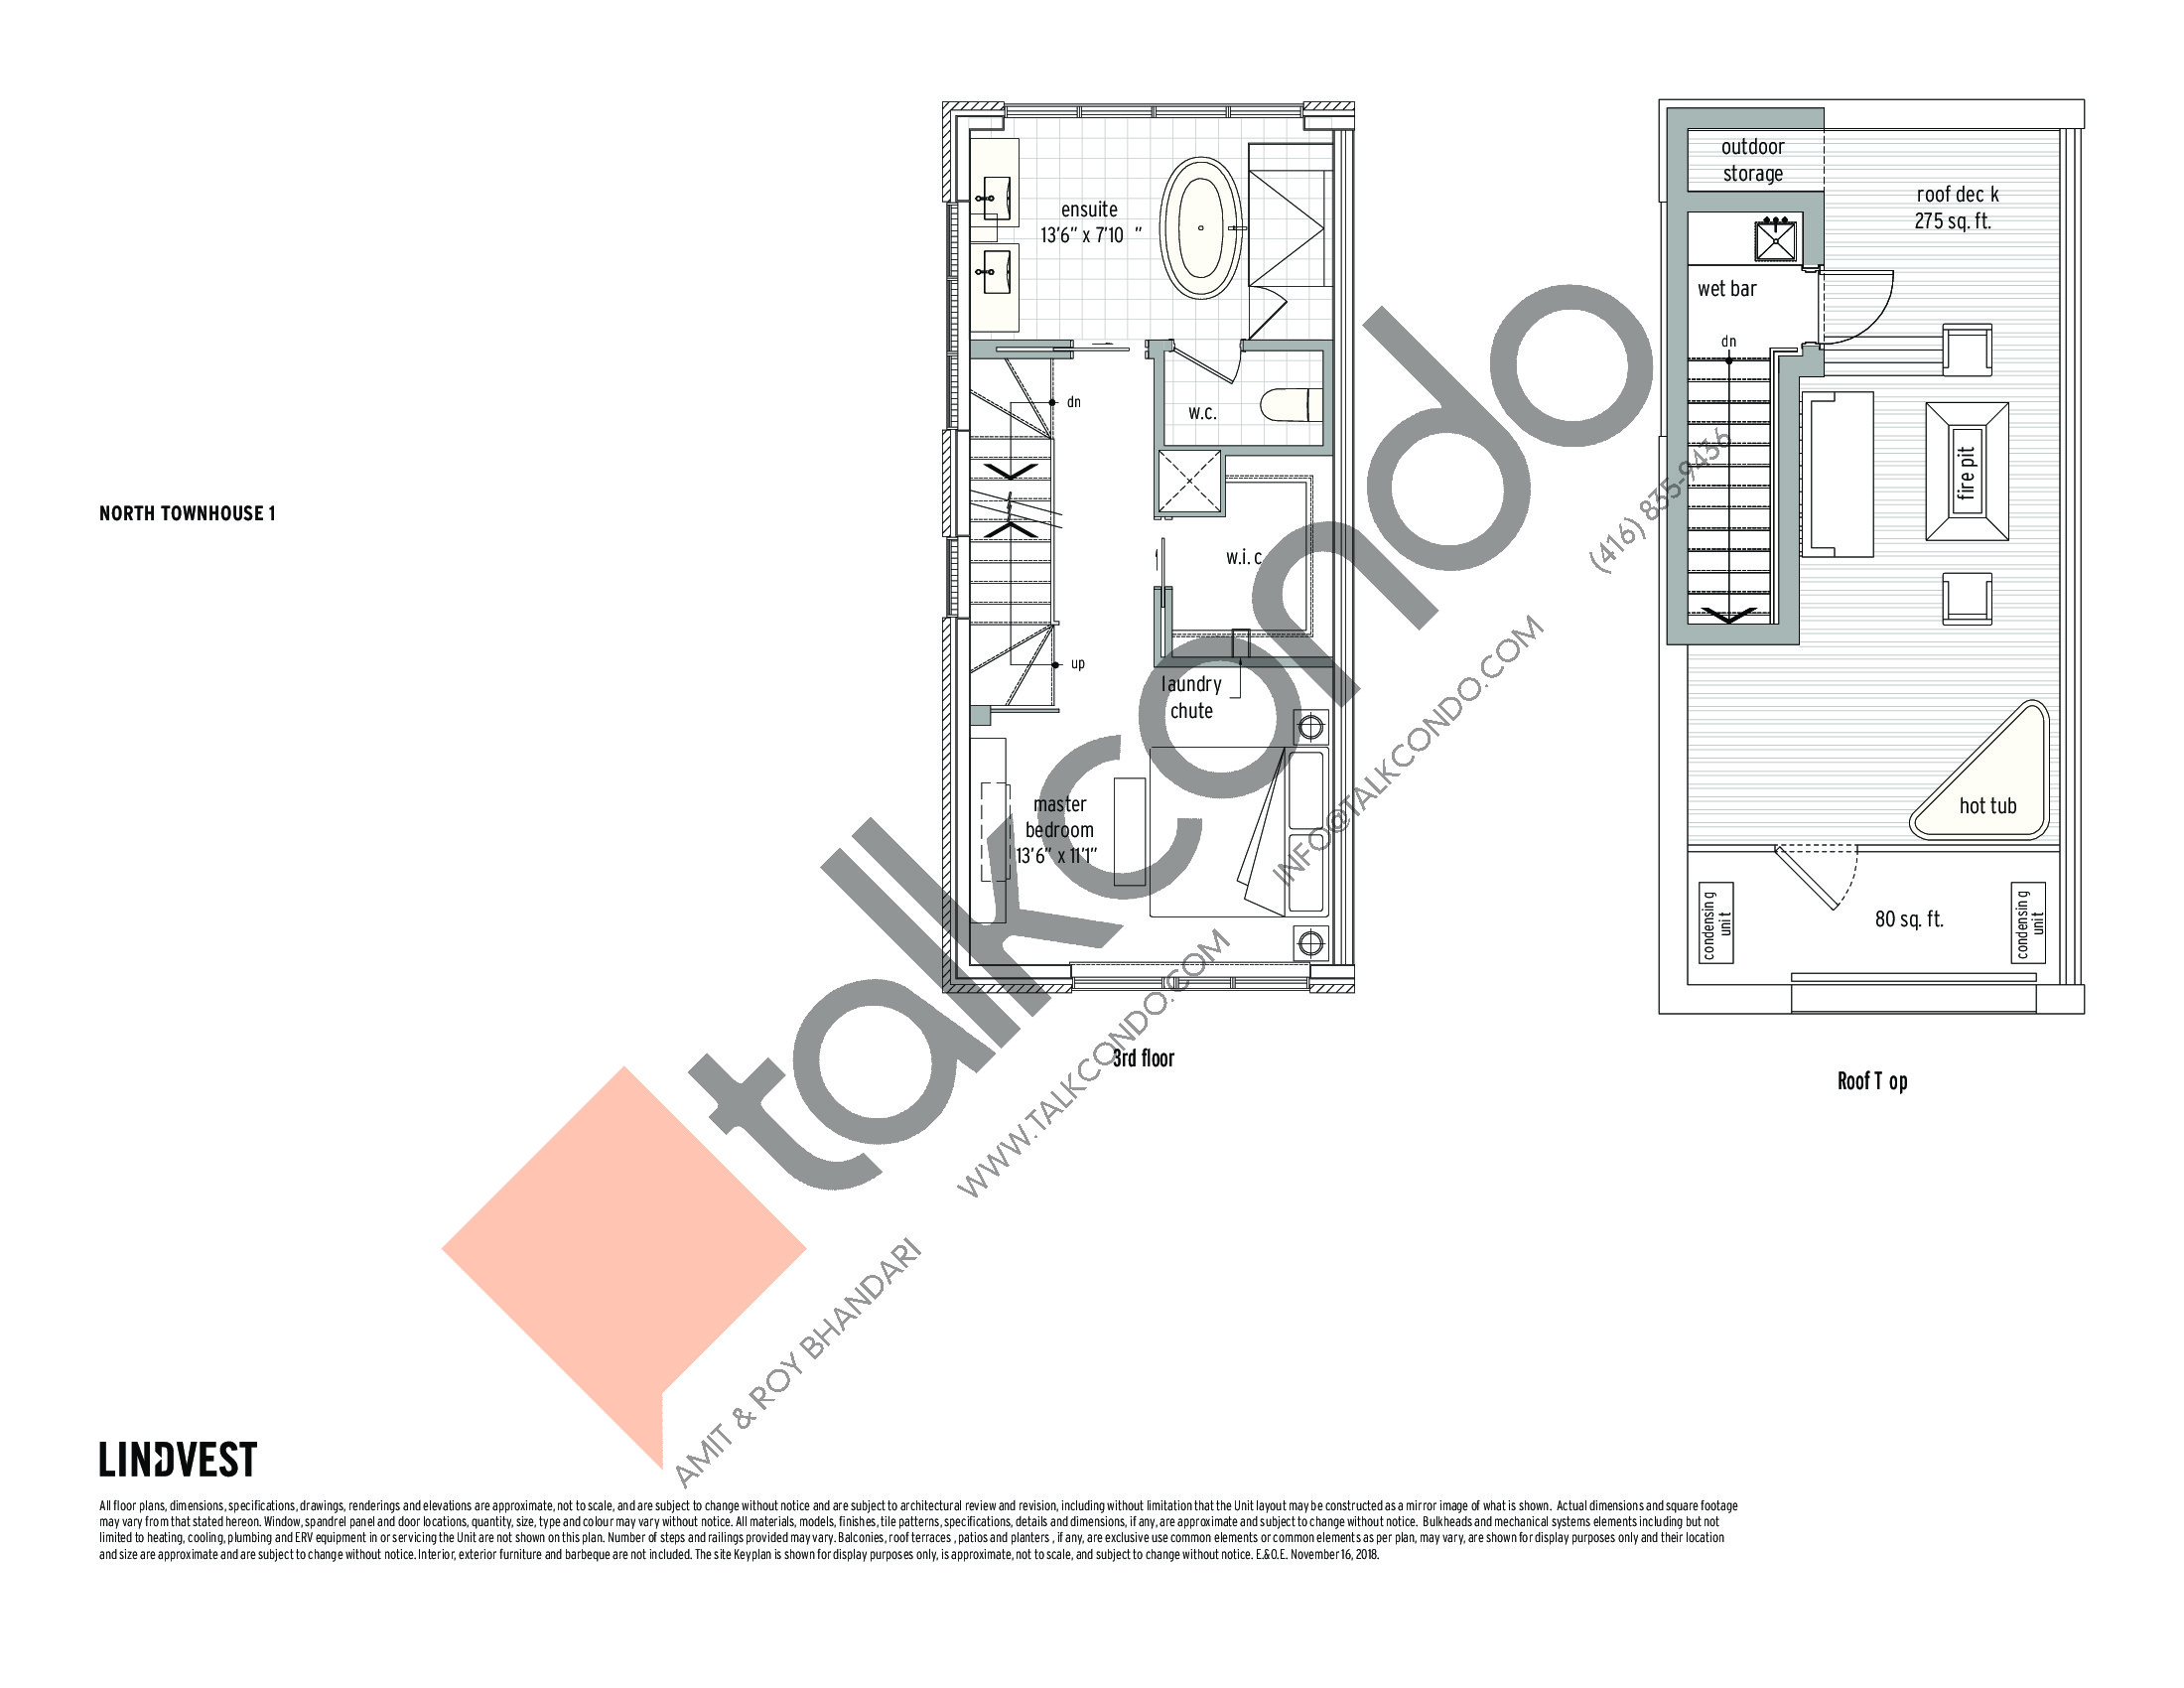 North Townhouse - 1 (2/2) Floor Plan at UltraSonic Towns - 1460 sq.ft